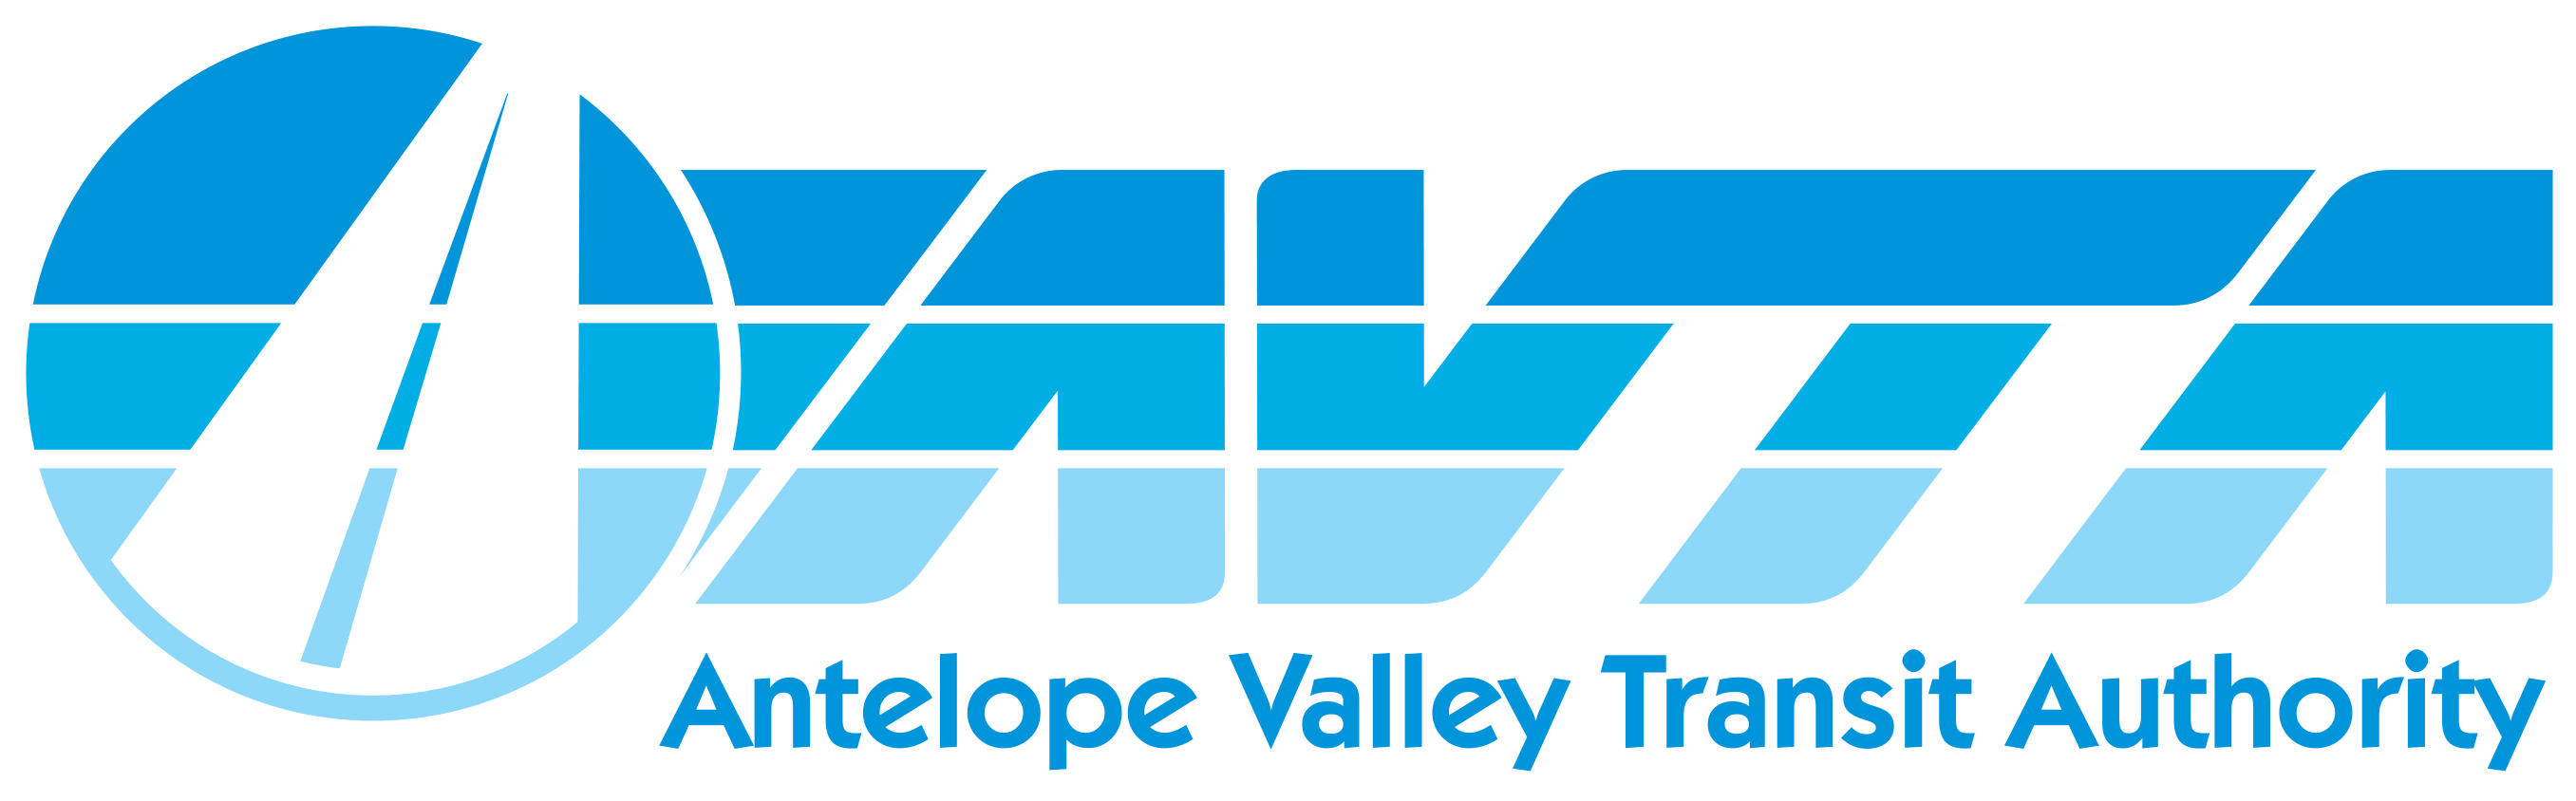 Antelope Valley Transit authority logo